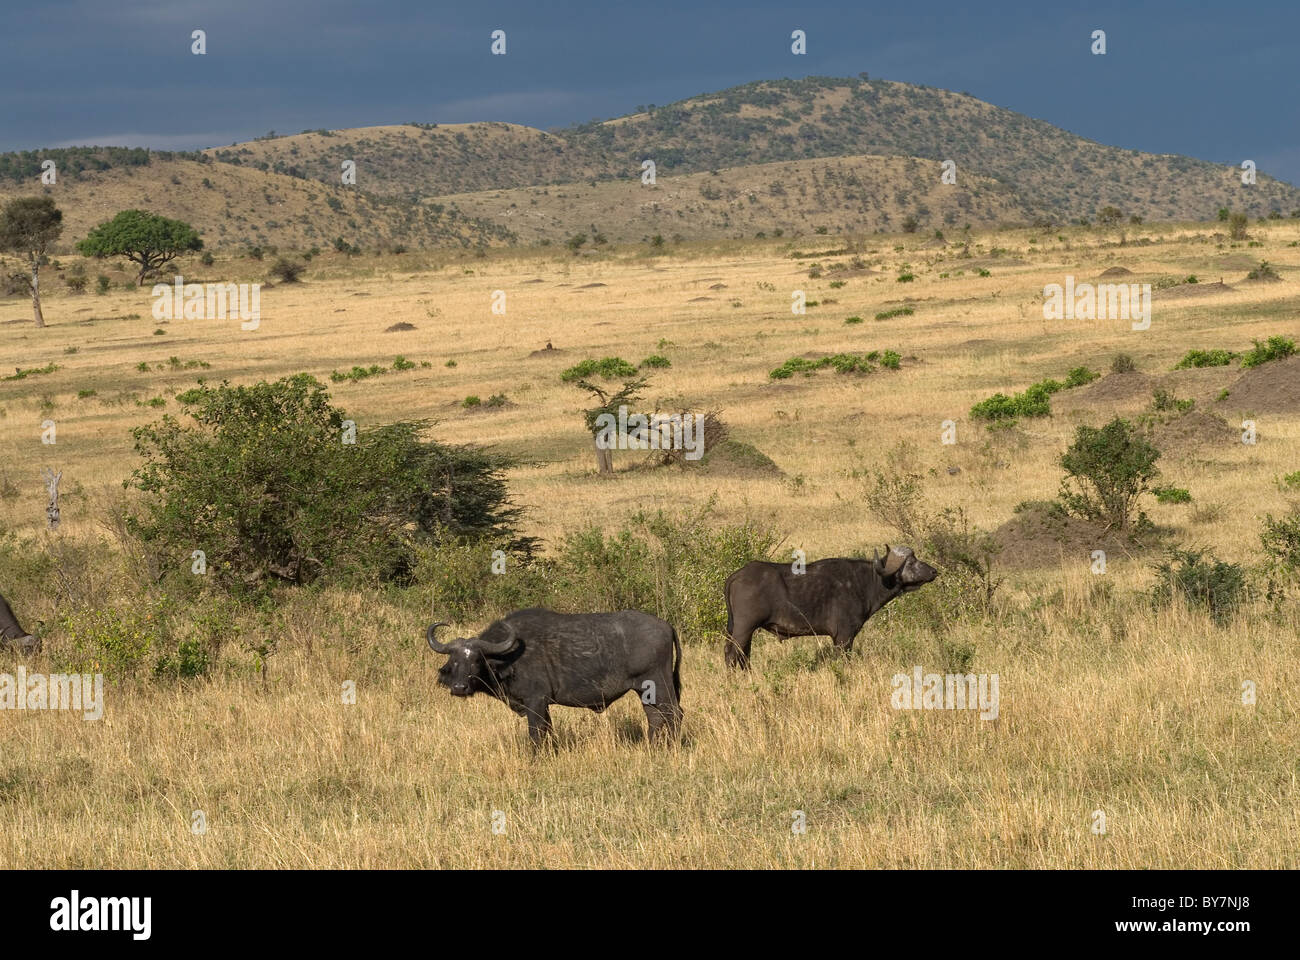 Cape Buffalo in the Mara - Stock Image